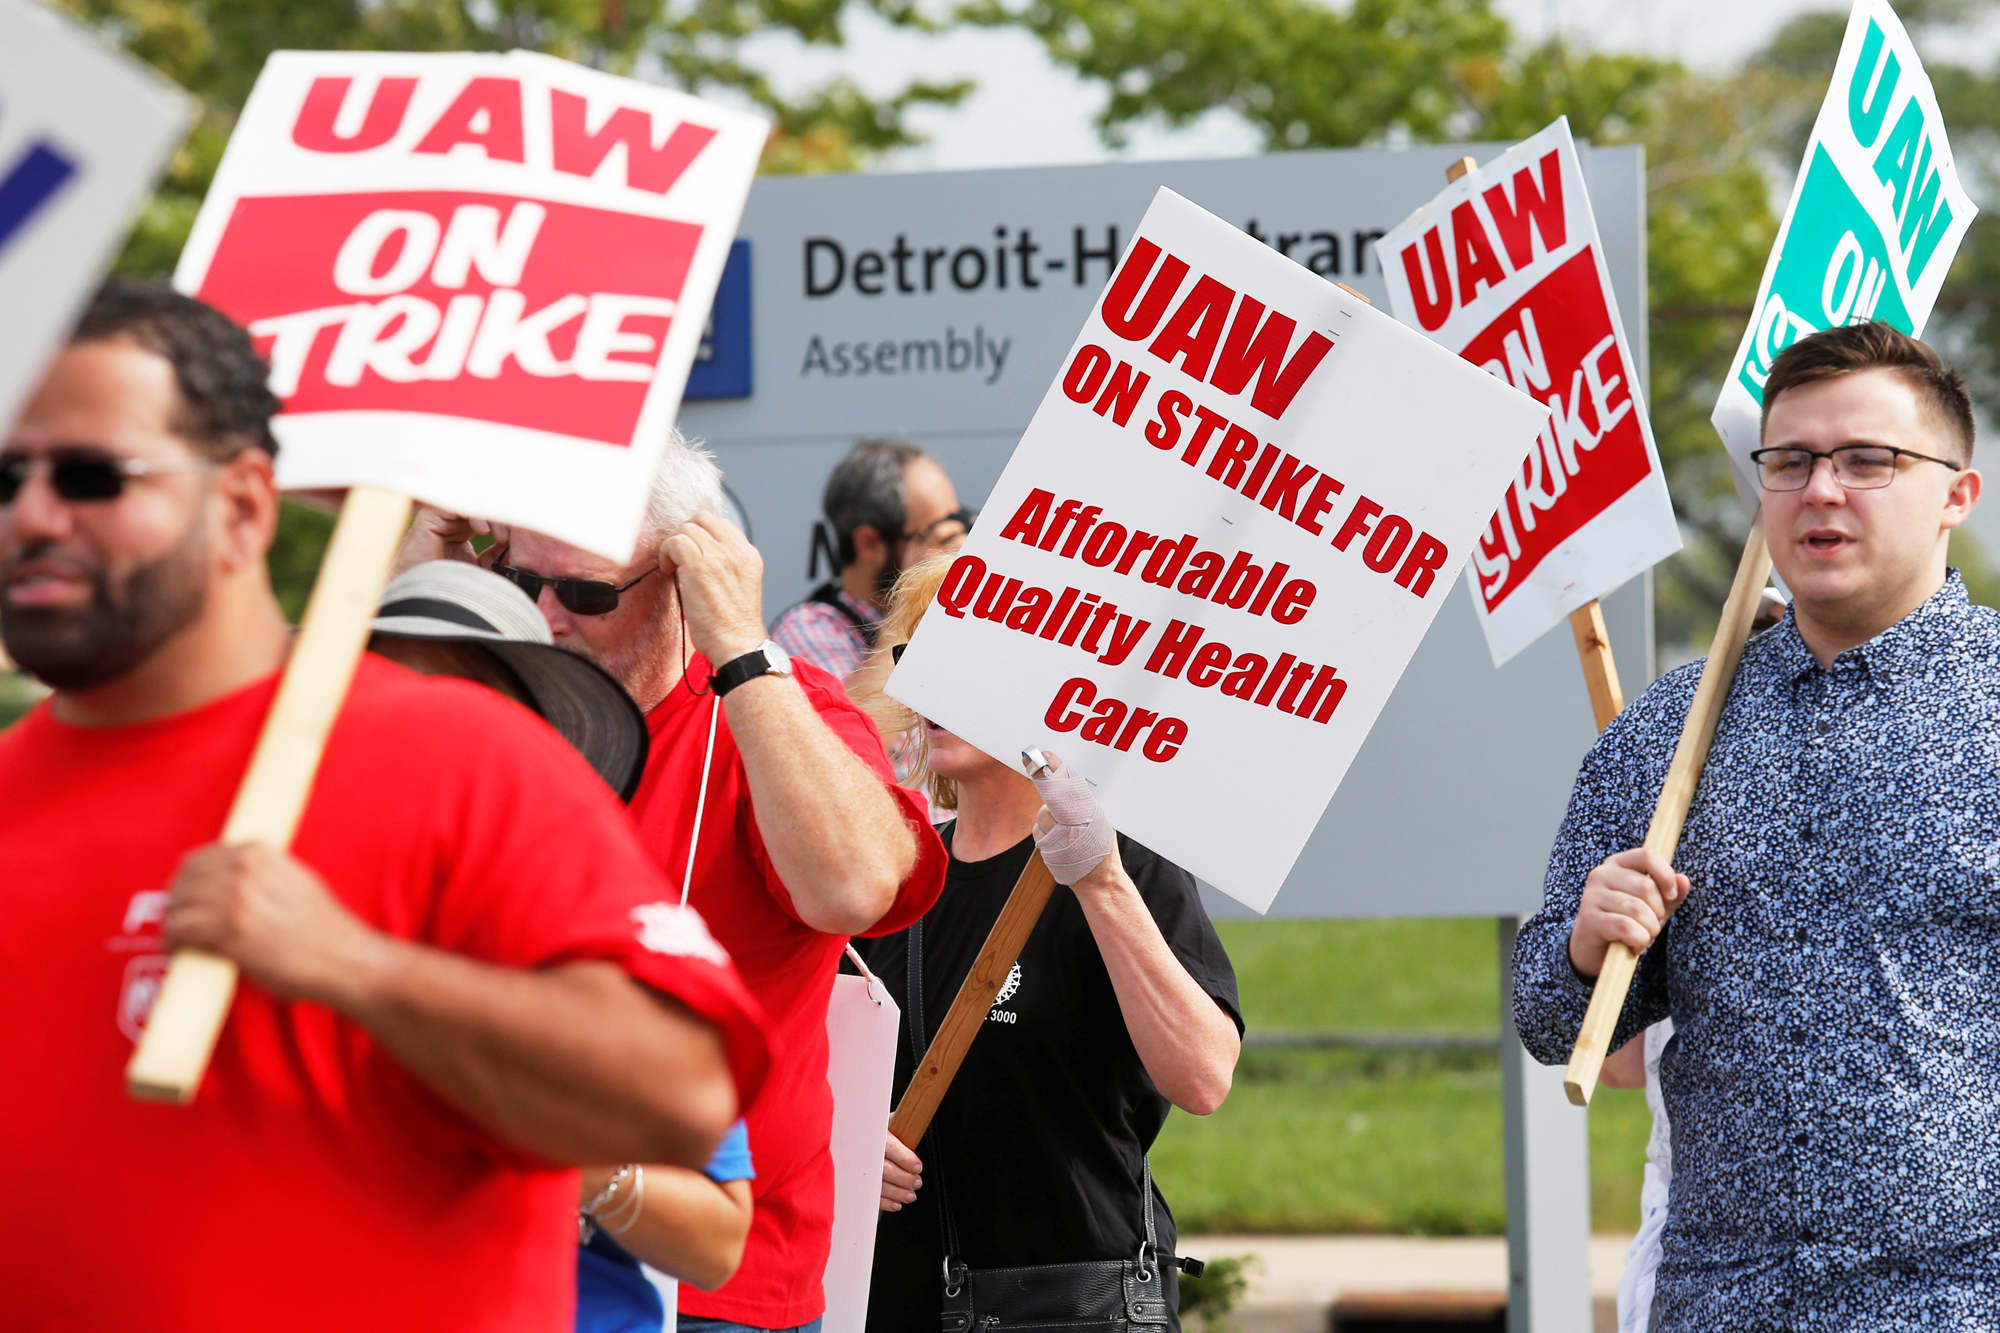 GM, UAW agree on tentative labor contract in deal that could end strike